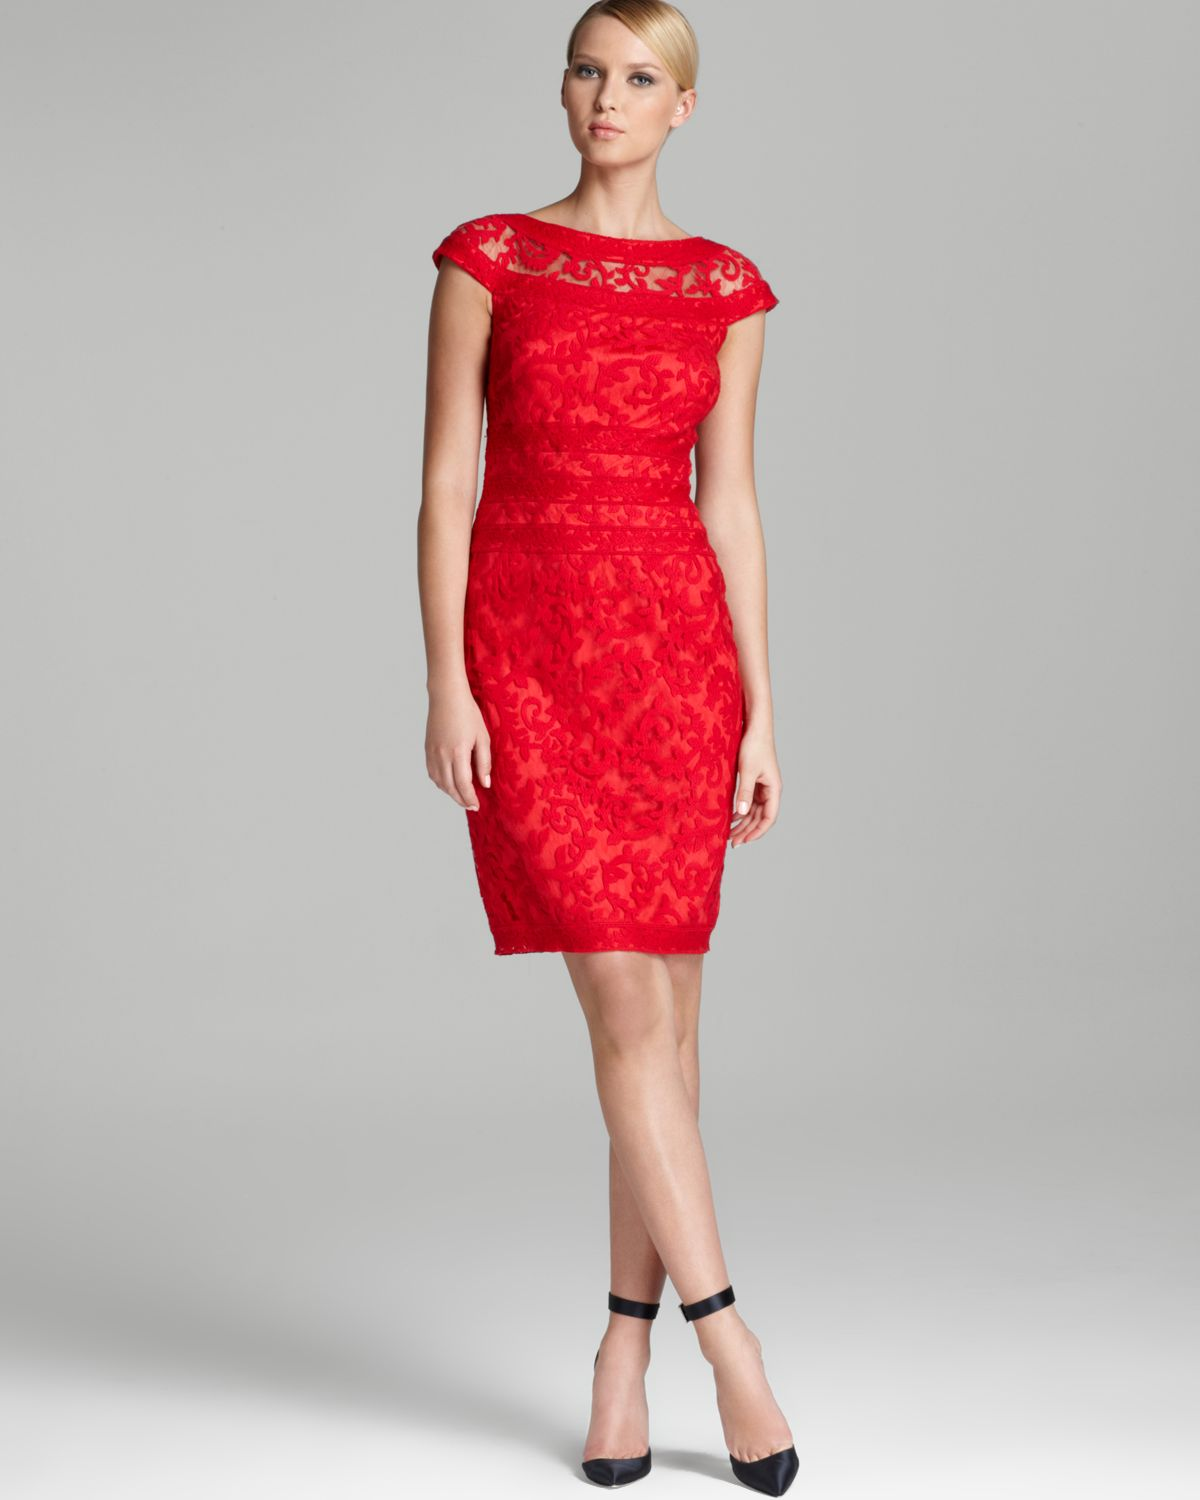 Tadashi shoji Lace Dress Cap Sleeve Illusion Neck in Red | Lyst